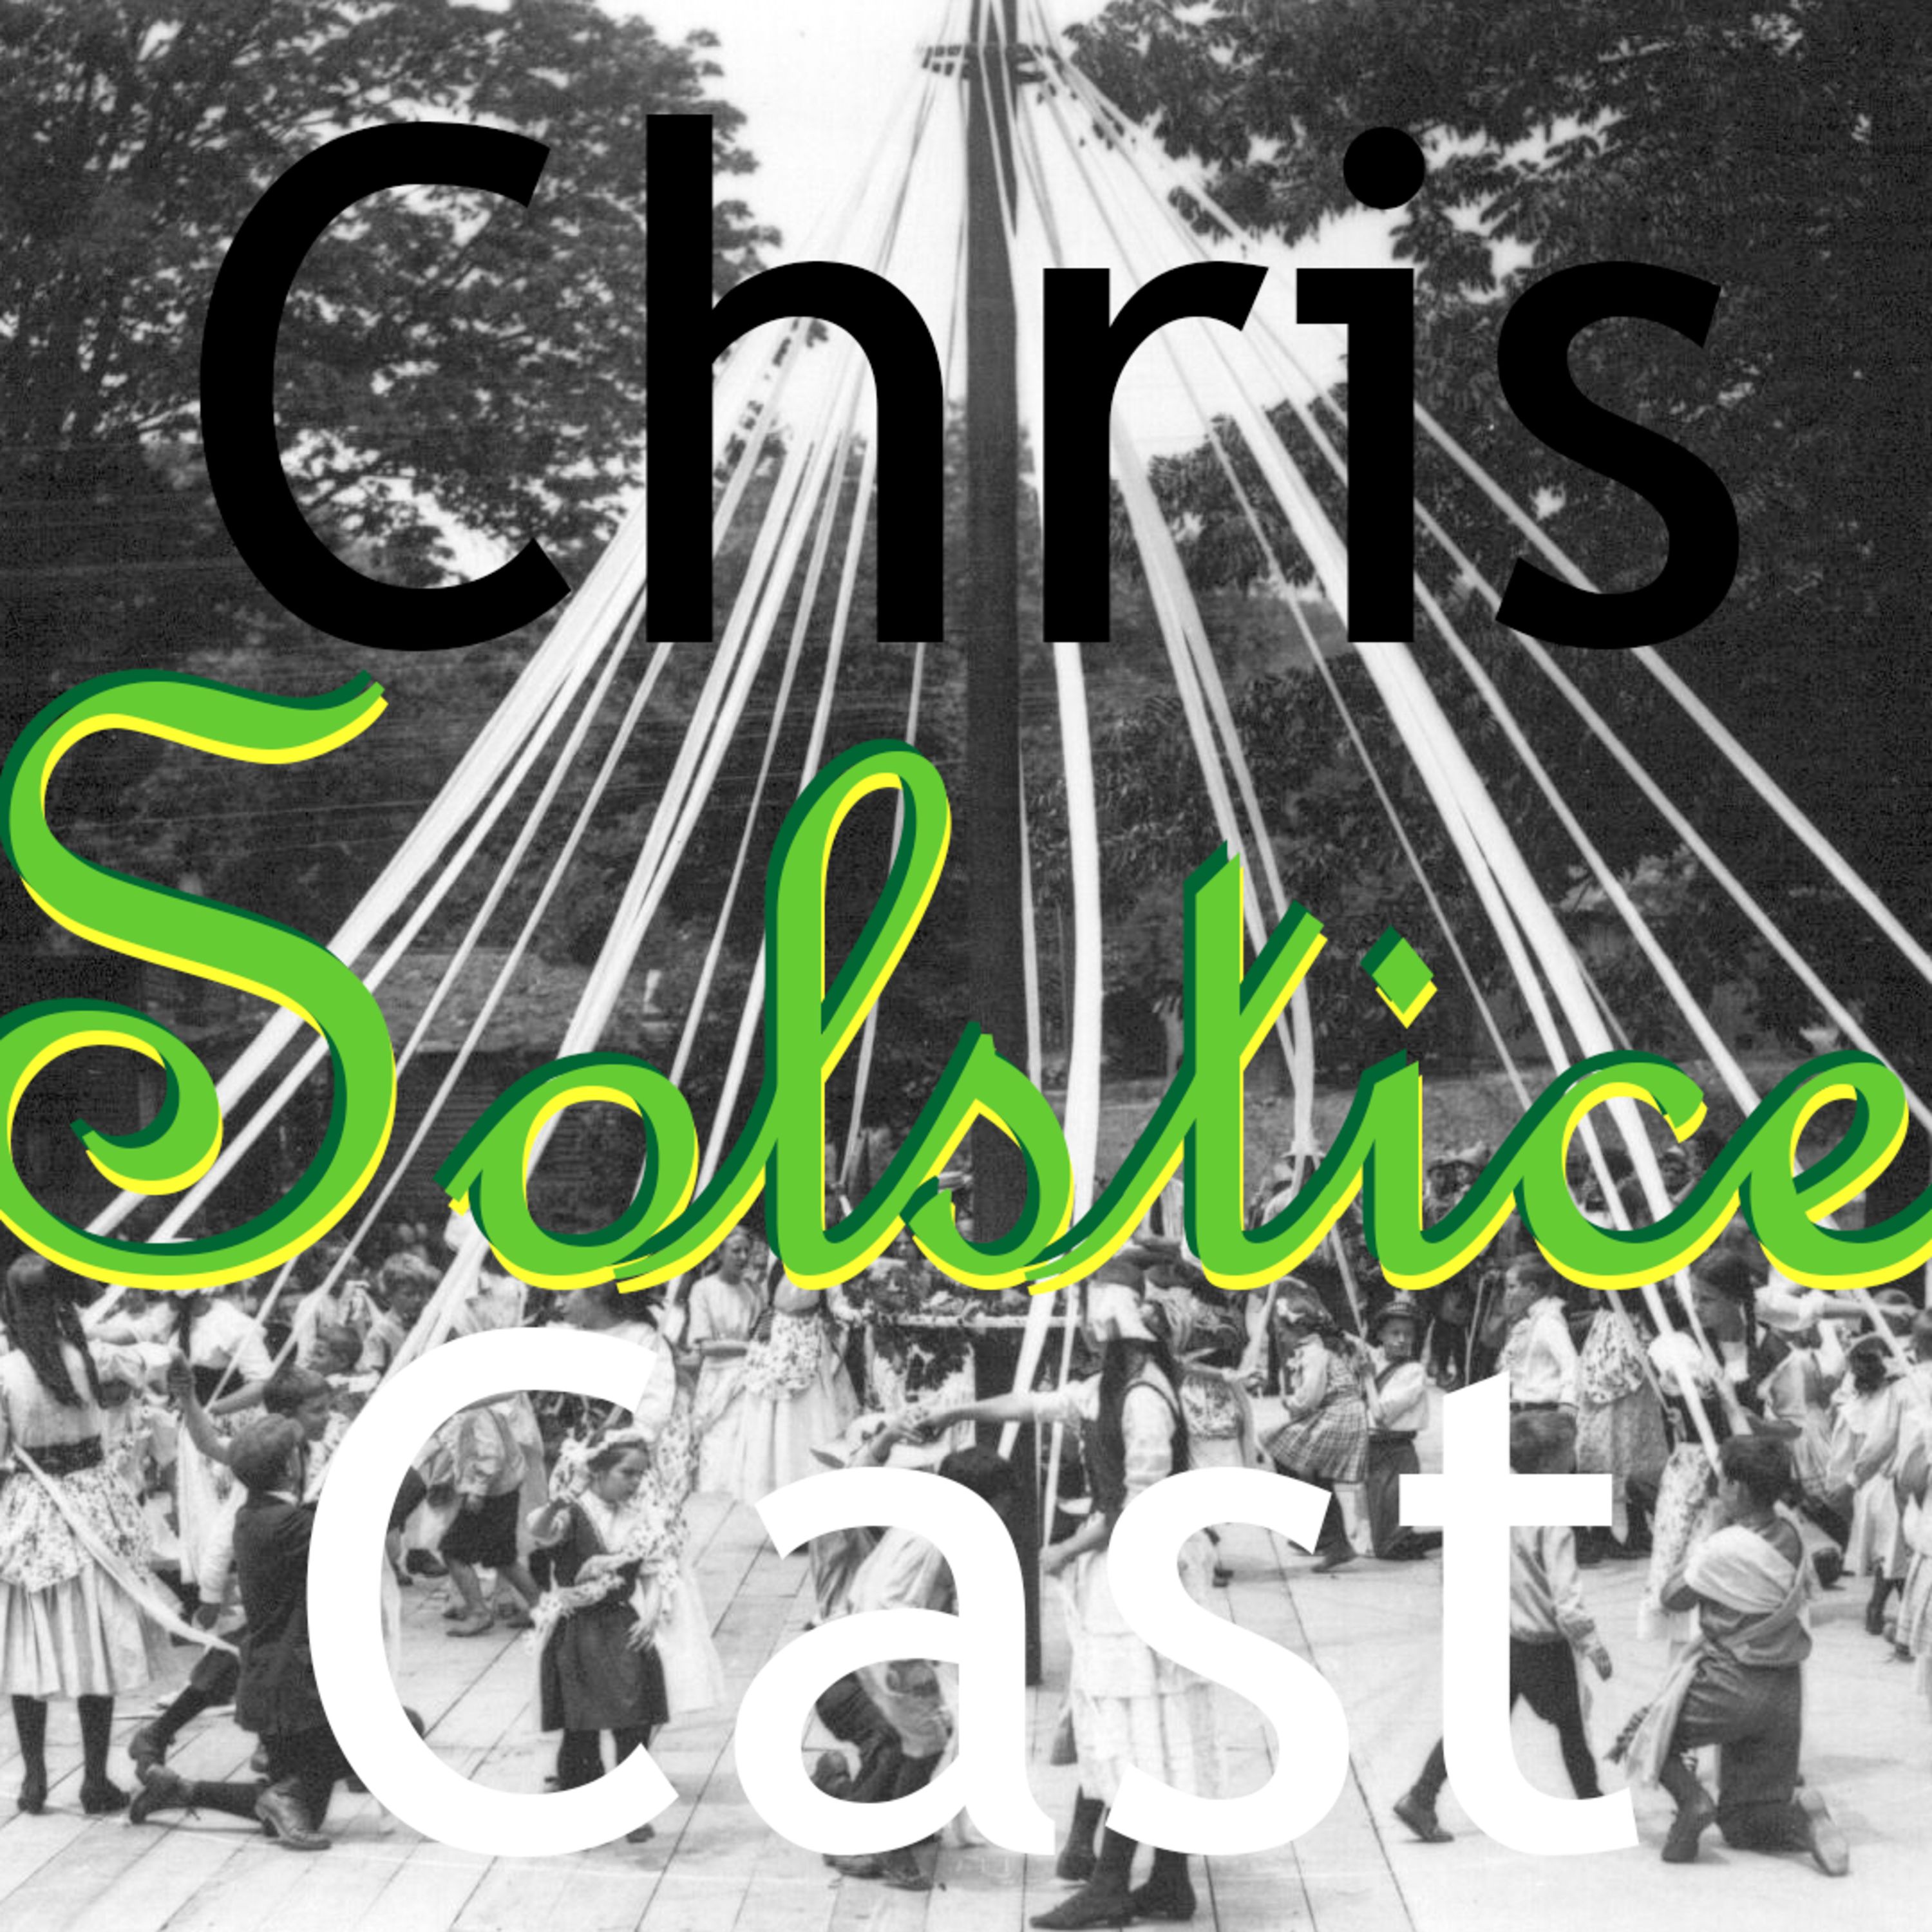 ChrisCast Episode 6: Summer Solstice ASMR Girl Ramble Fiesta Par Excellence